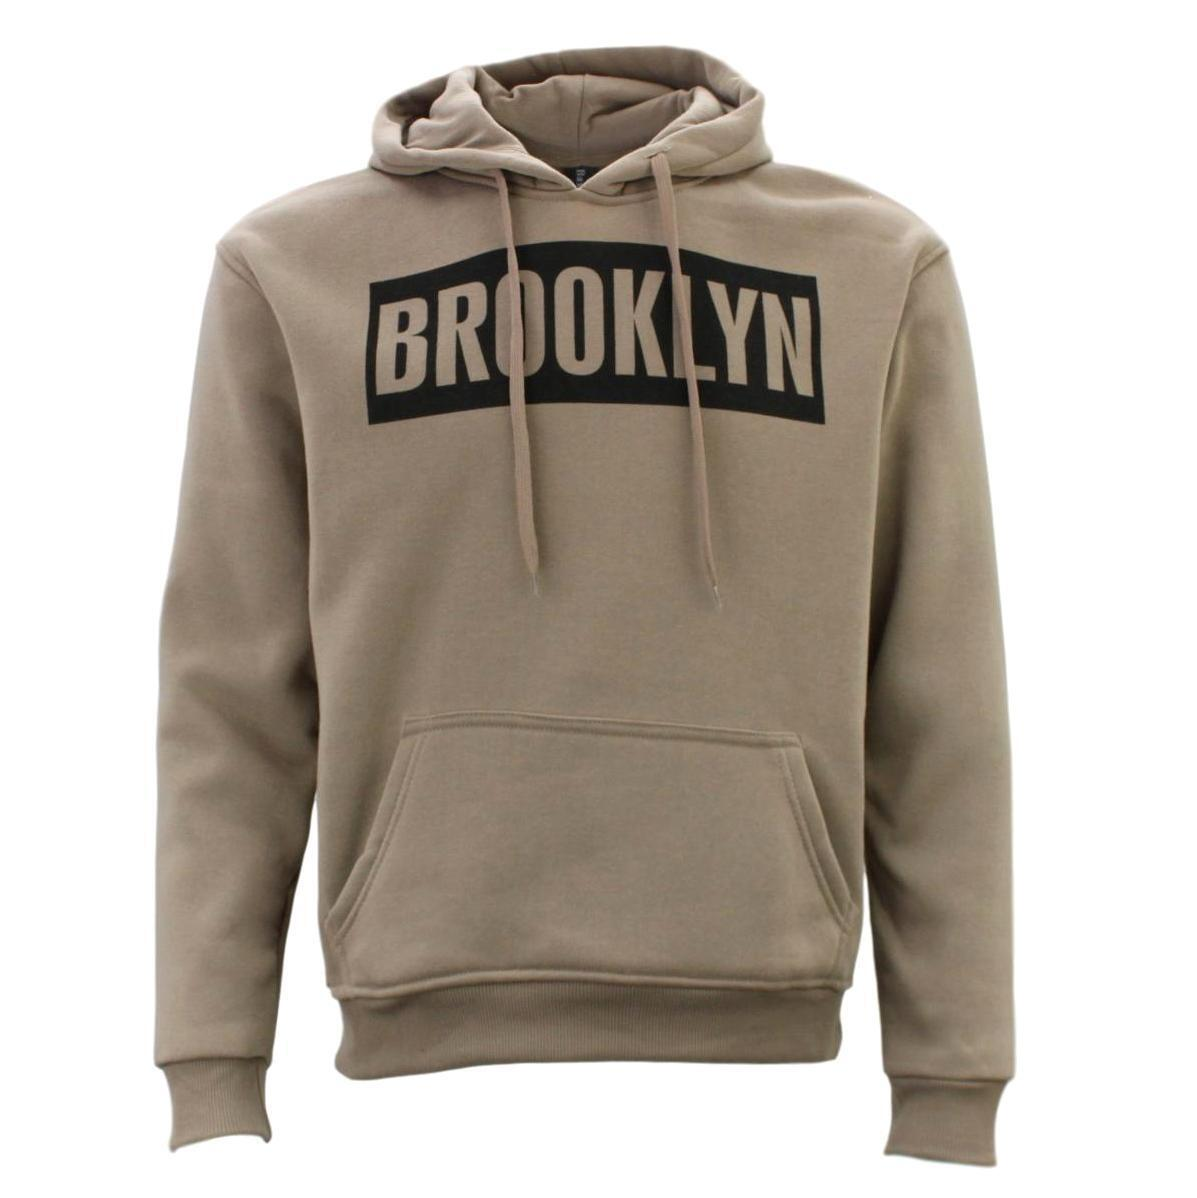 Adult-Men-039-s-Unisex-Hoodie-Hooded-Jumper-Pullover-Women-039-s-Sweater-BROOKLYN thumbnail 24